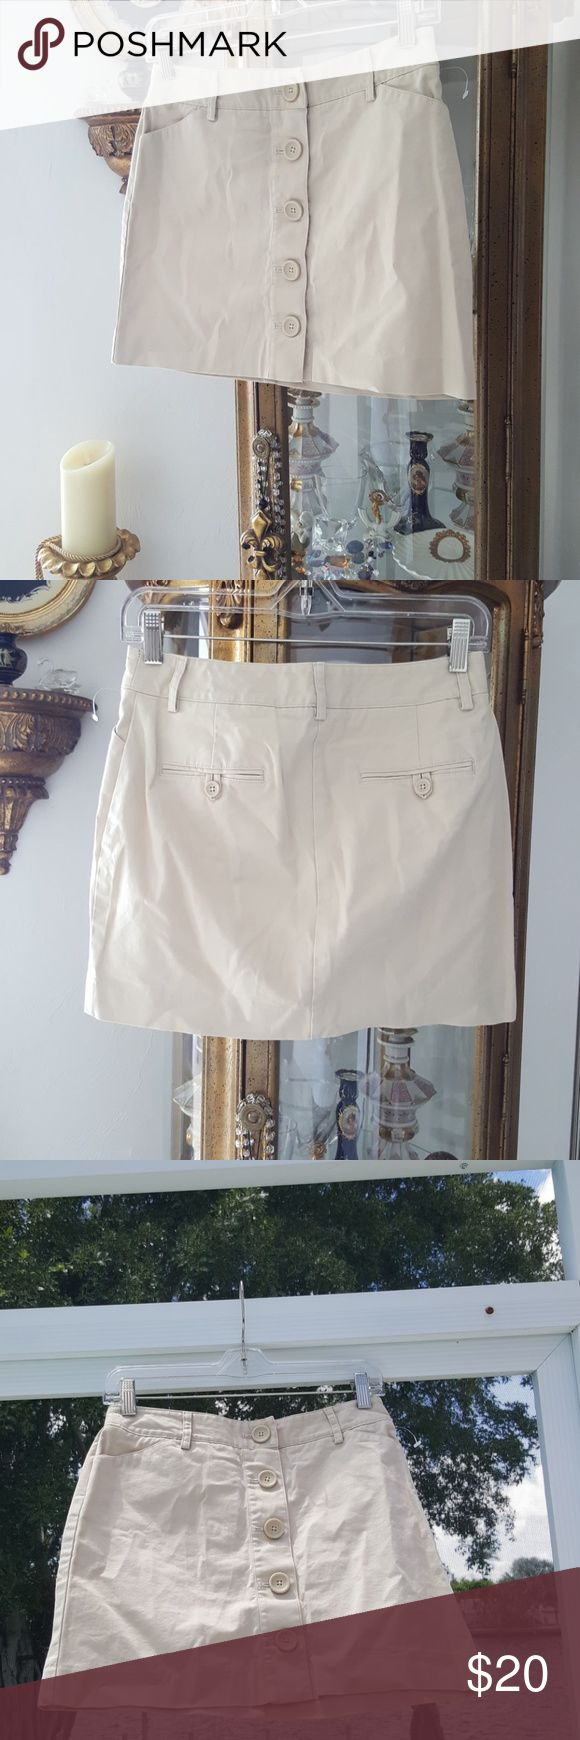 EXPRESS Khaki Tan Button Mini Skirt Sz.2 Great condition! Size 2. Super CUTE A-Line Semi High Waisted Skirt With Buttons. Would look sooooo cute with your favorite crop top, or a plain white t-shirt! Flip flops, heels or boots! Material has a bit of stretch. 96% COTTON 4% LYCRA SPANDEX. Please see photos. Express Skirts Mini